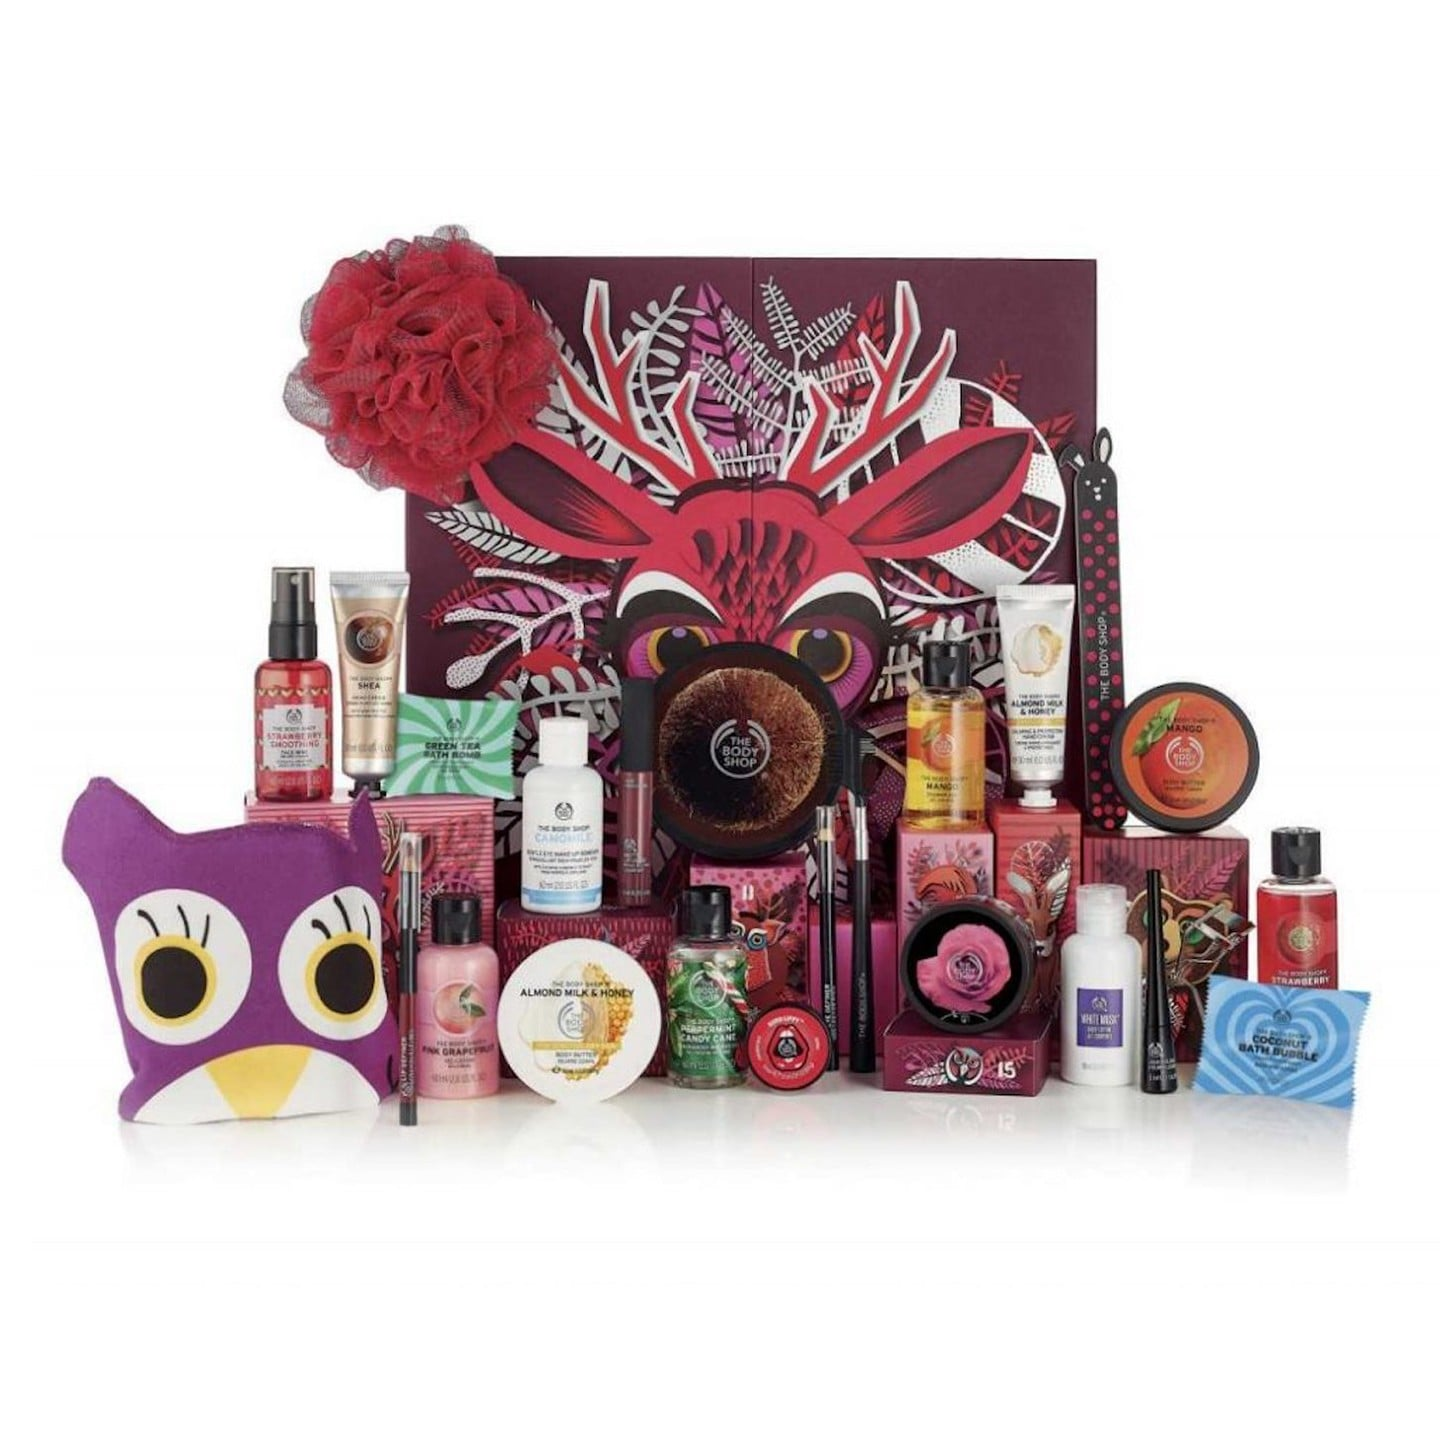 21d9930dadda9 Best Beauty Advent Calendars 2018